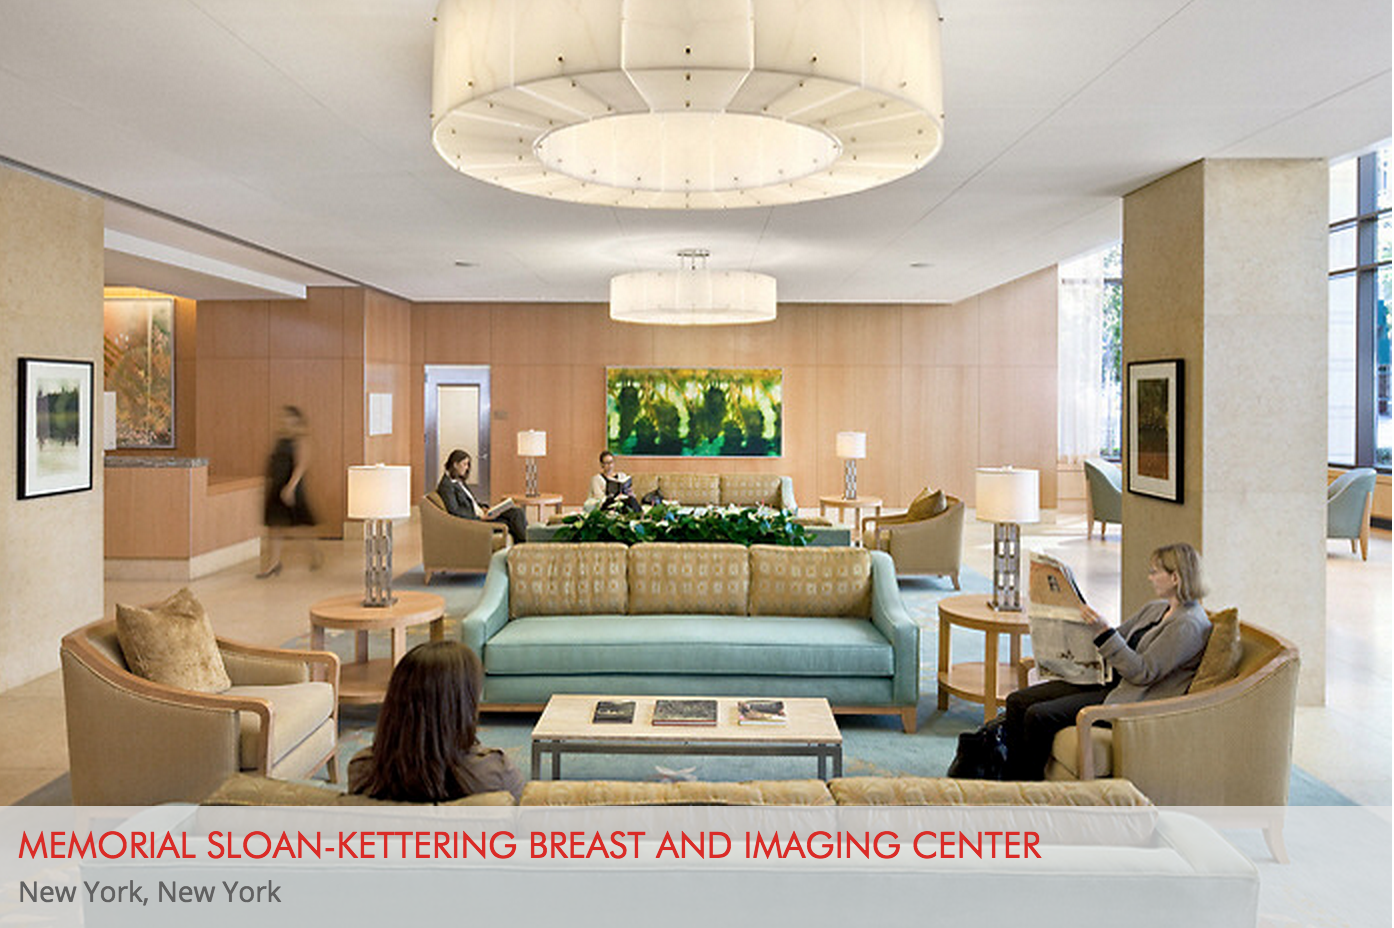 Memorial Sloan-Kettering Breast Imaging Center in New York